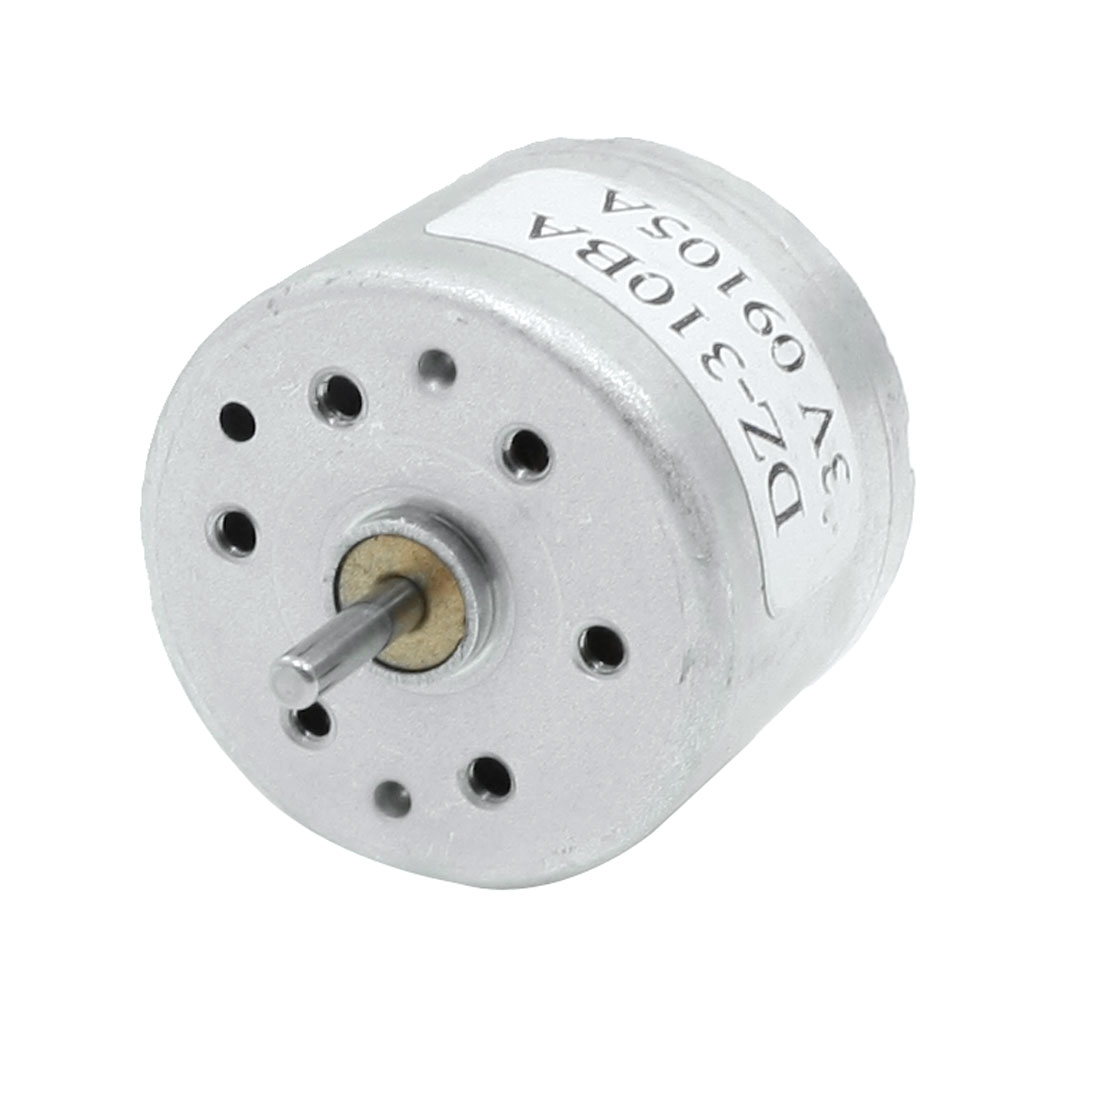 High Torque 1700R/MIN Rotating Speed DC 3V RF-310 Mini Motor